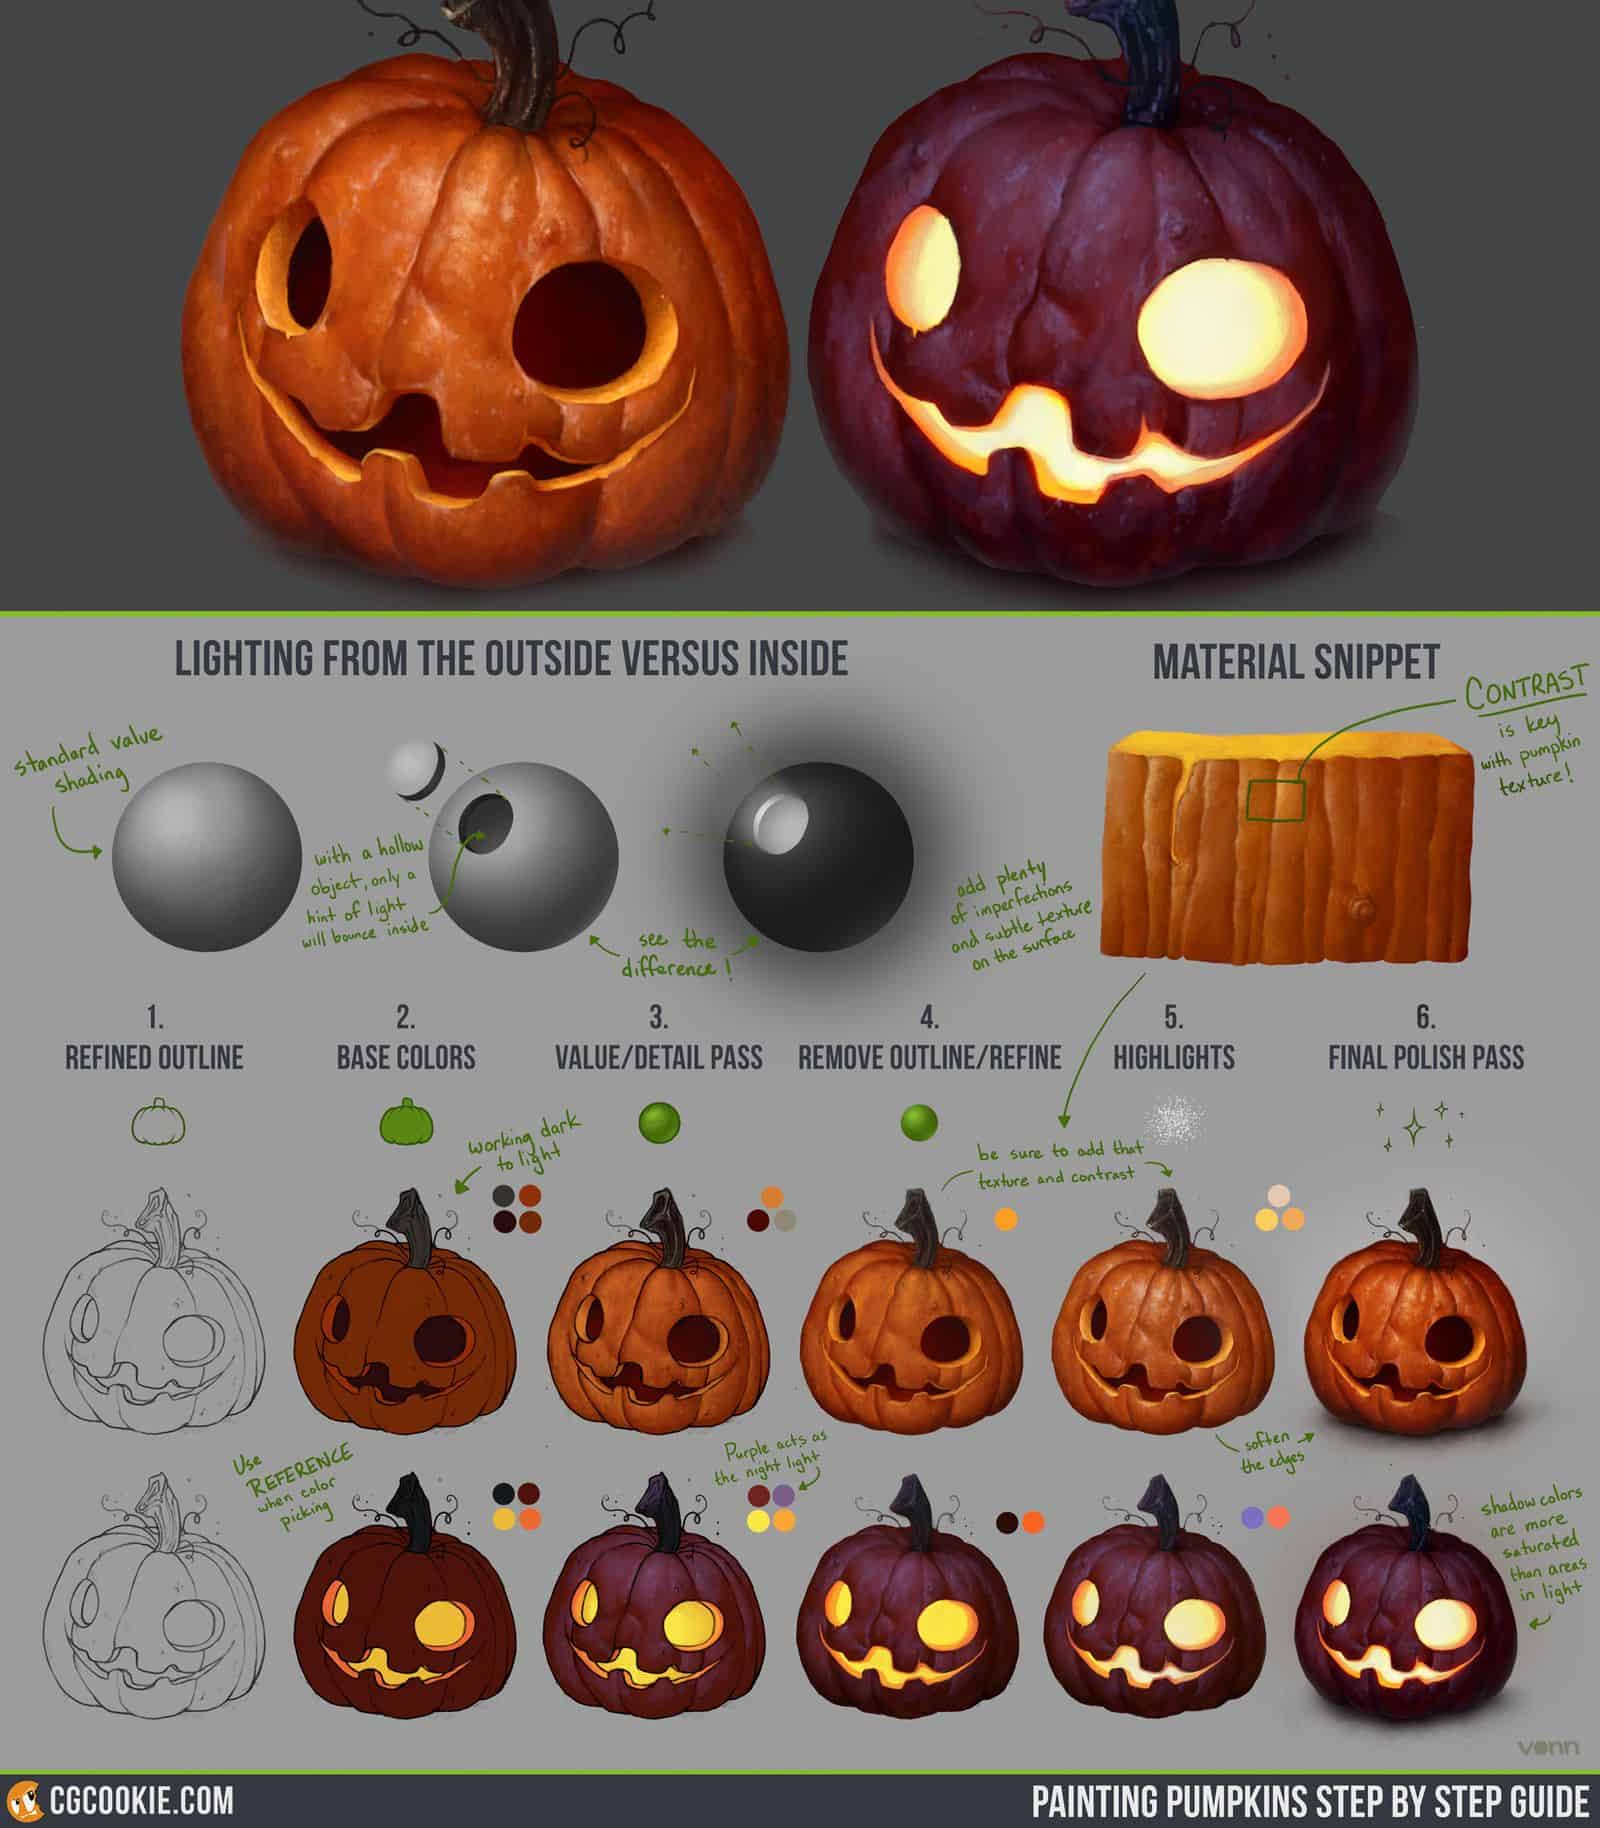 A step by step guide to painting jack o lanterns